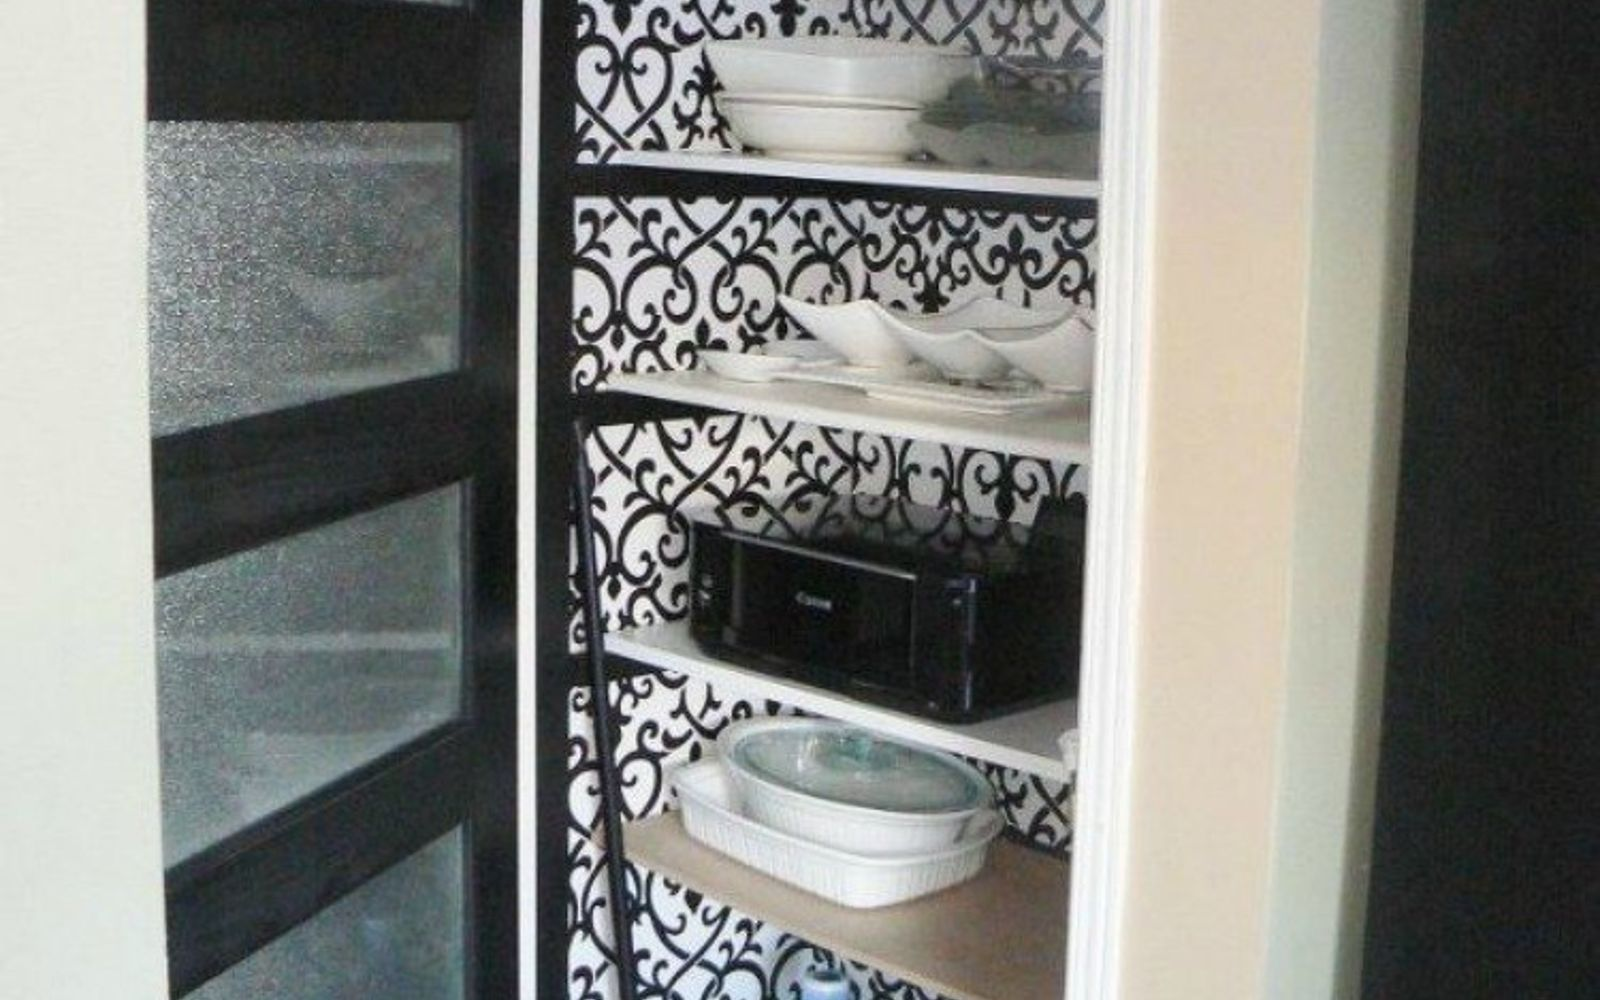 s 20 ways you never thought of using wallpaper, wall decor, Transform your kitchen pantry